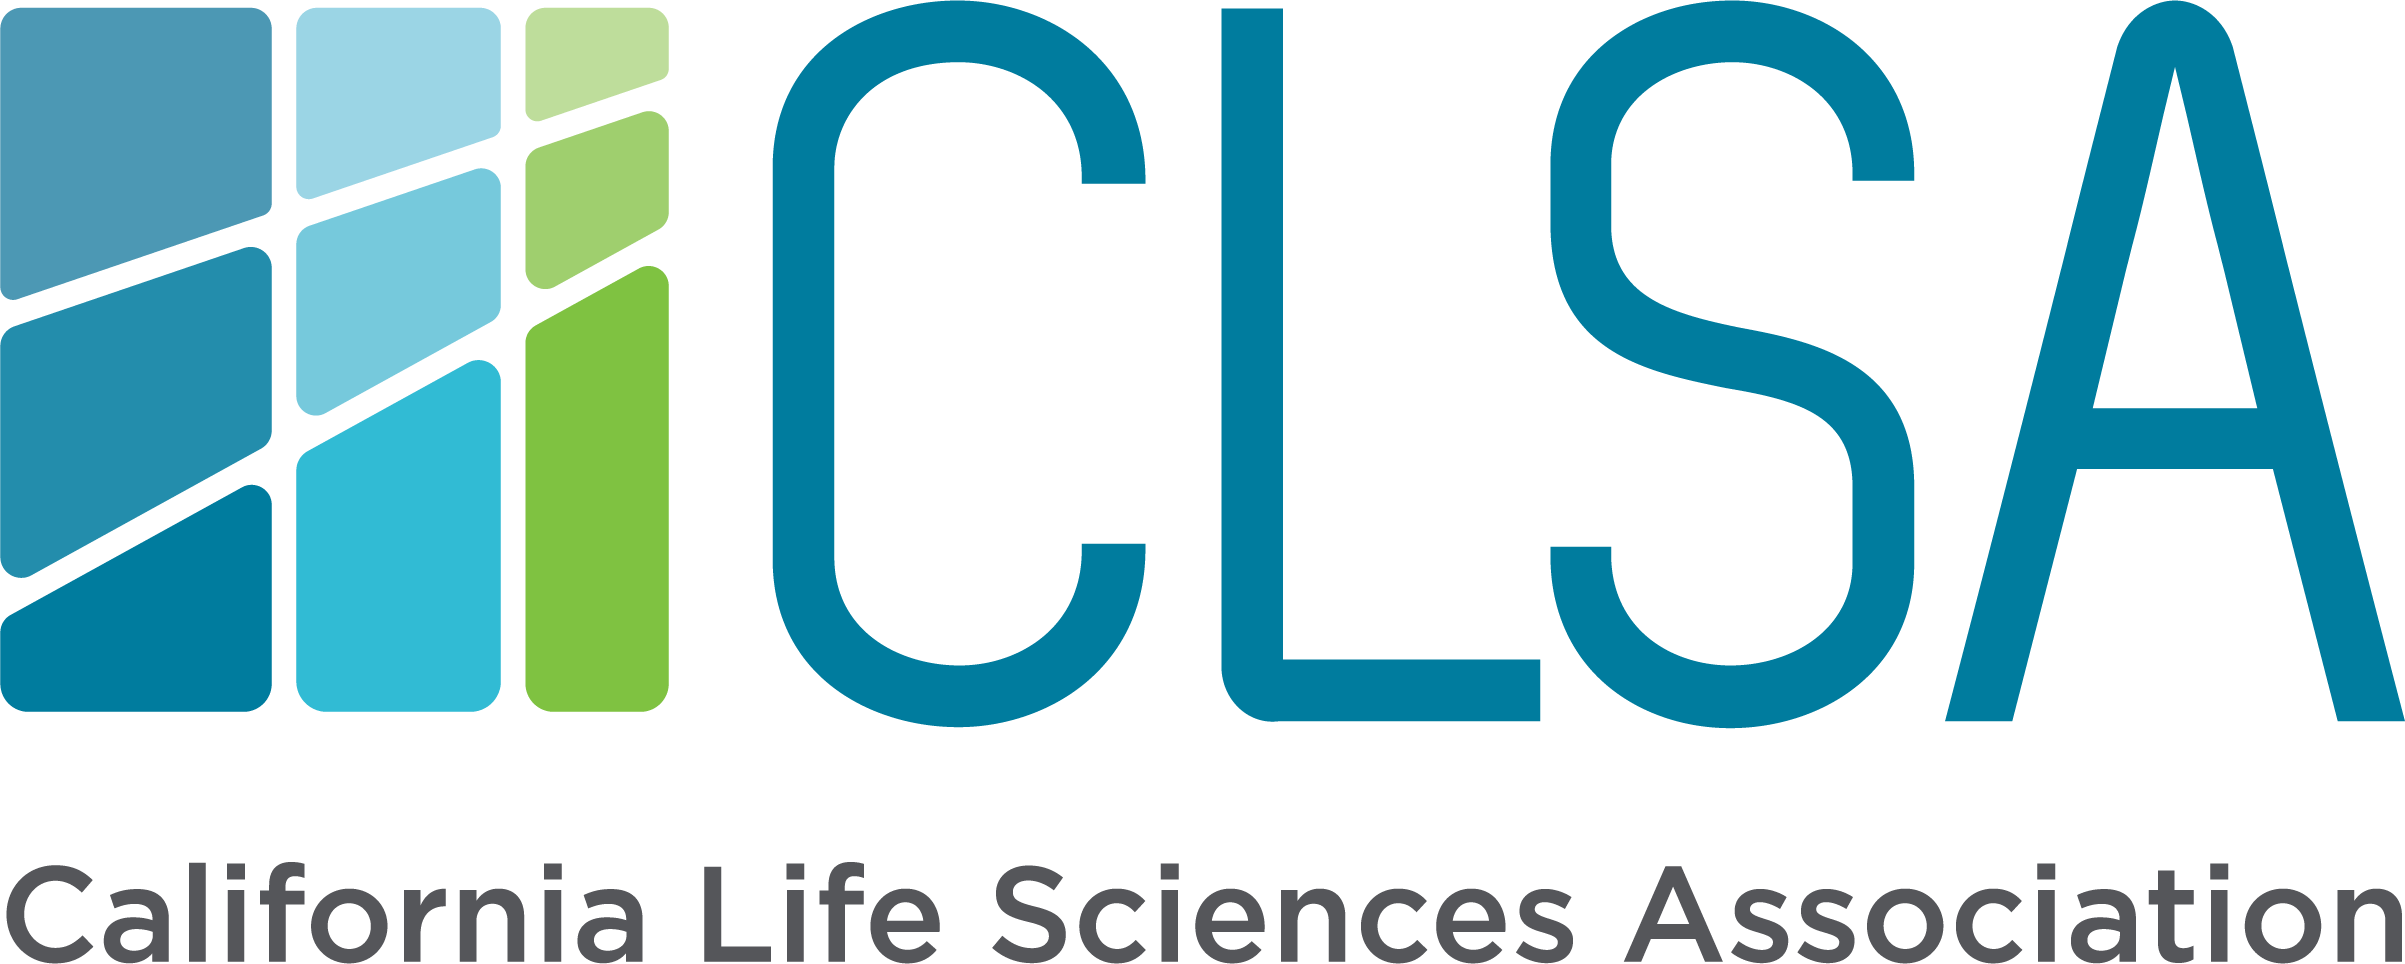 https://asiapacificdevicesummit.com/wp-content/uploads/sites/291/2019/01/CLSA_LOGO_CMYK.png